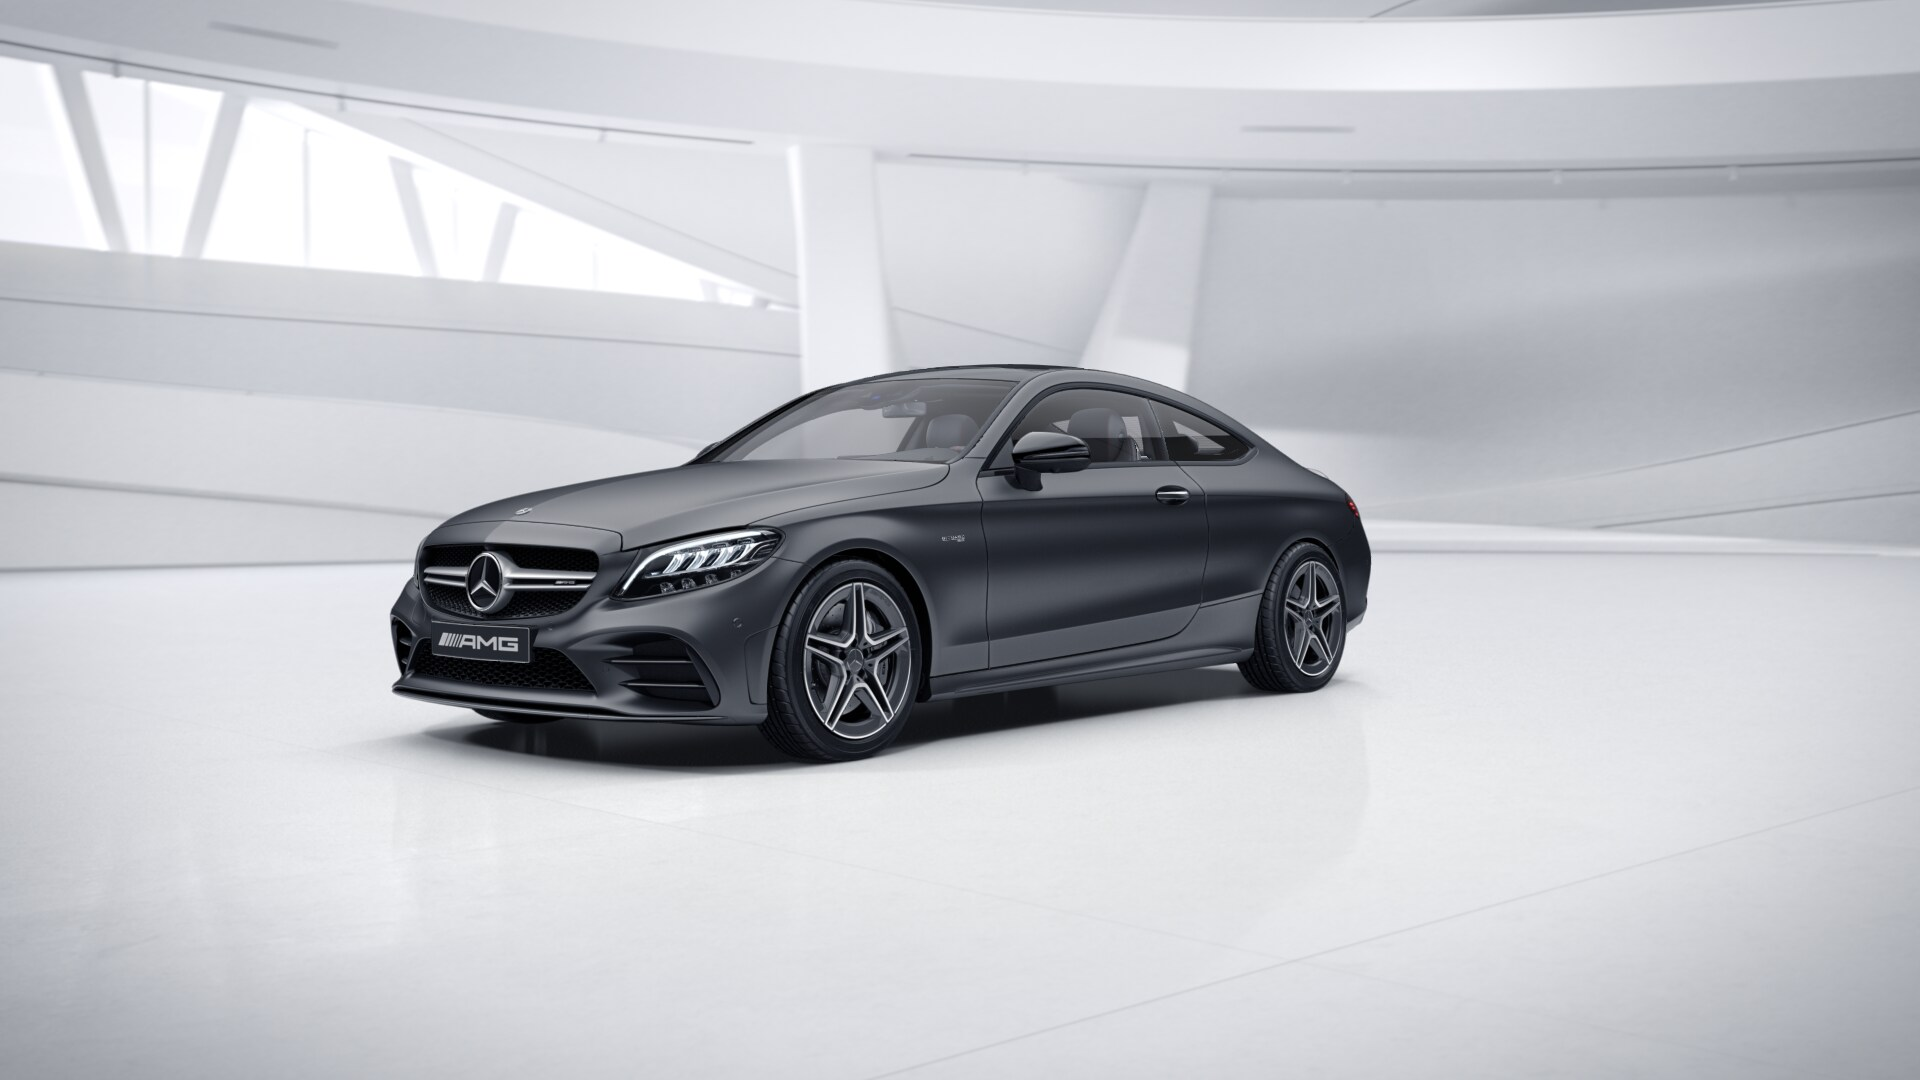 מרצדס קופה Mercedes AMG C43 Coupe